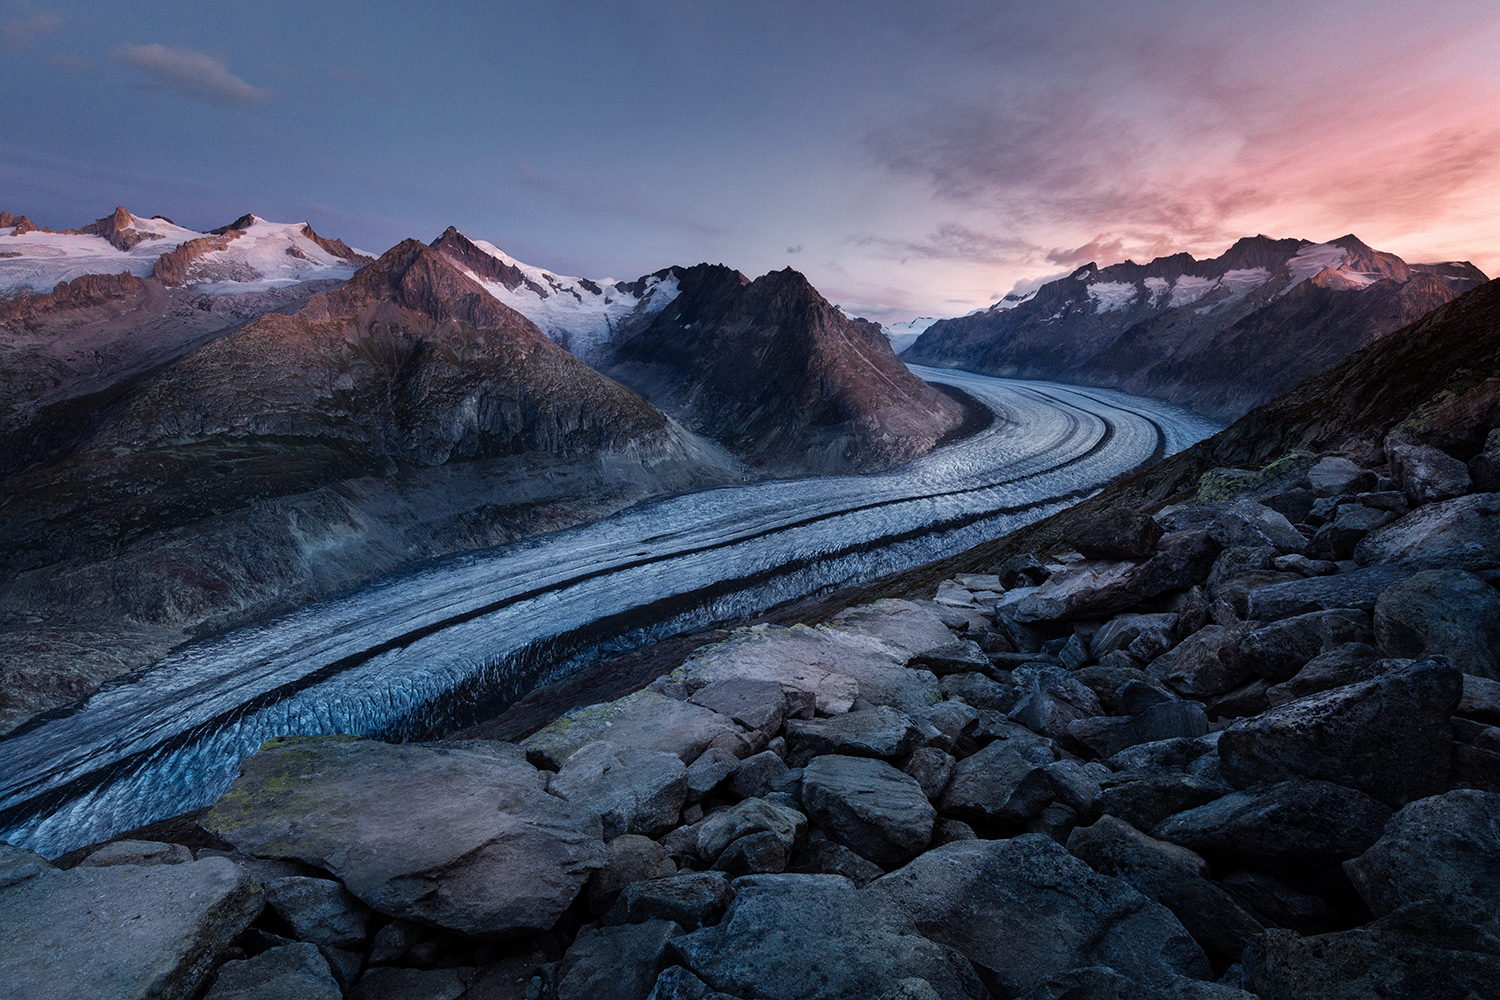 Mountain glaciers at sunset